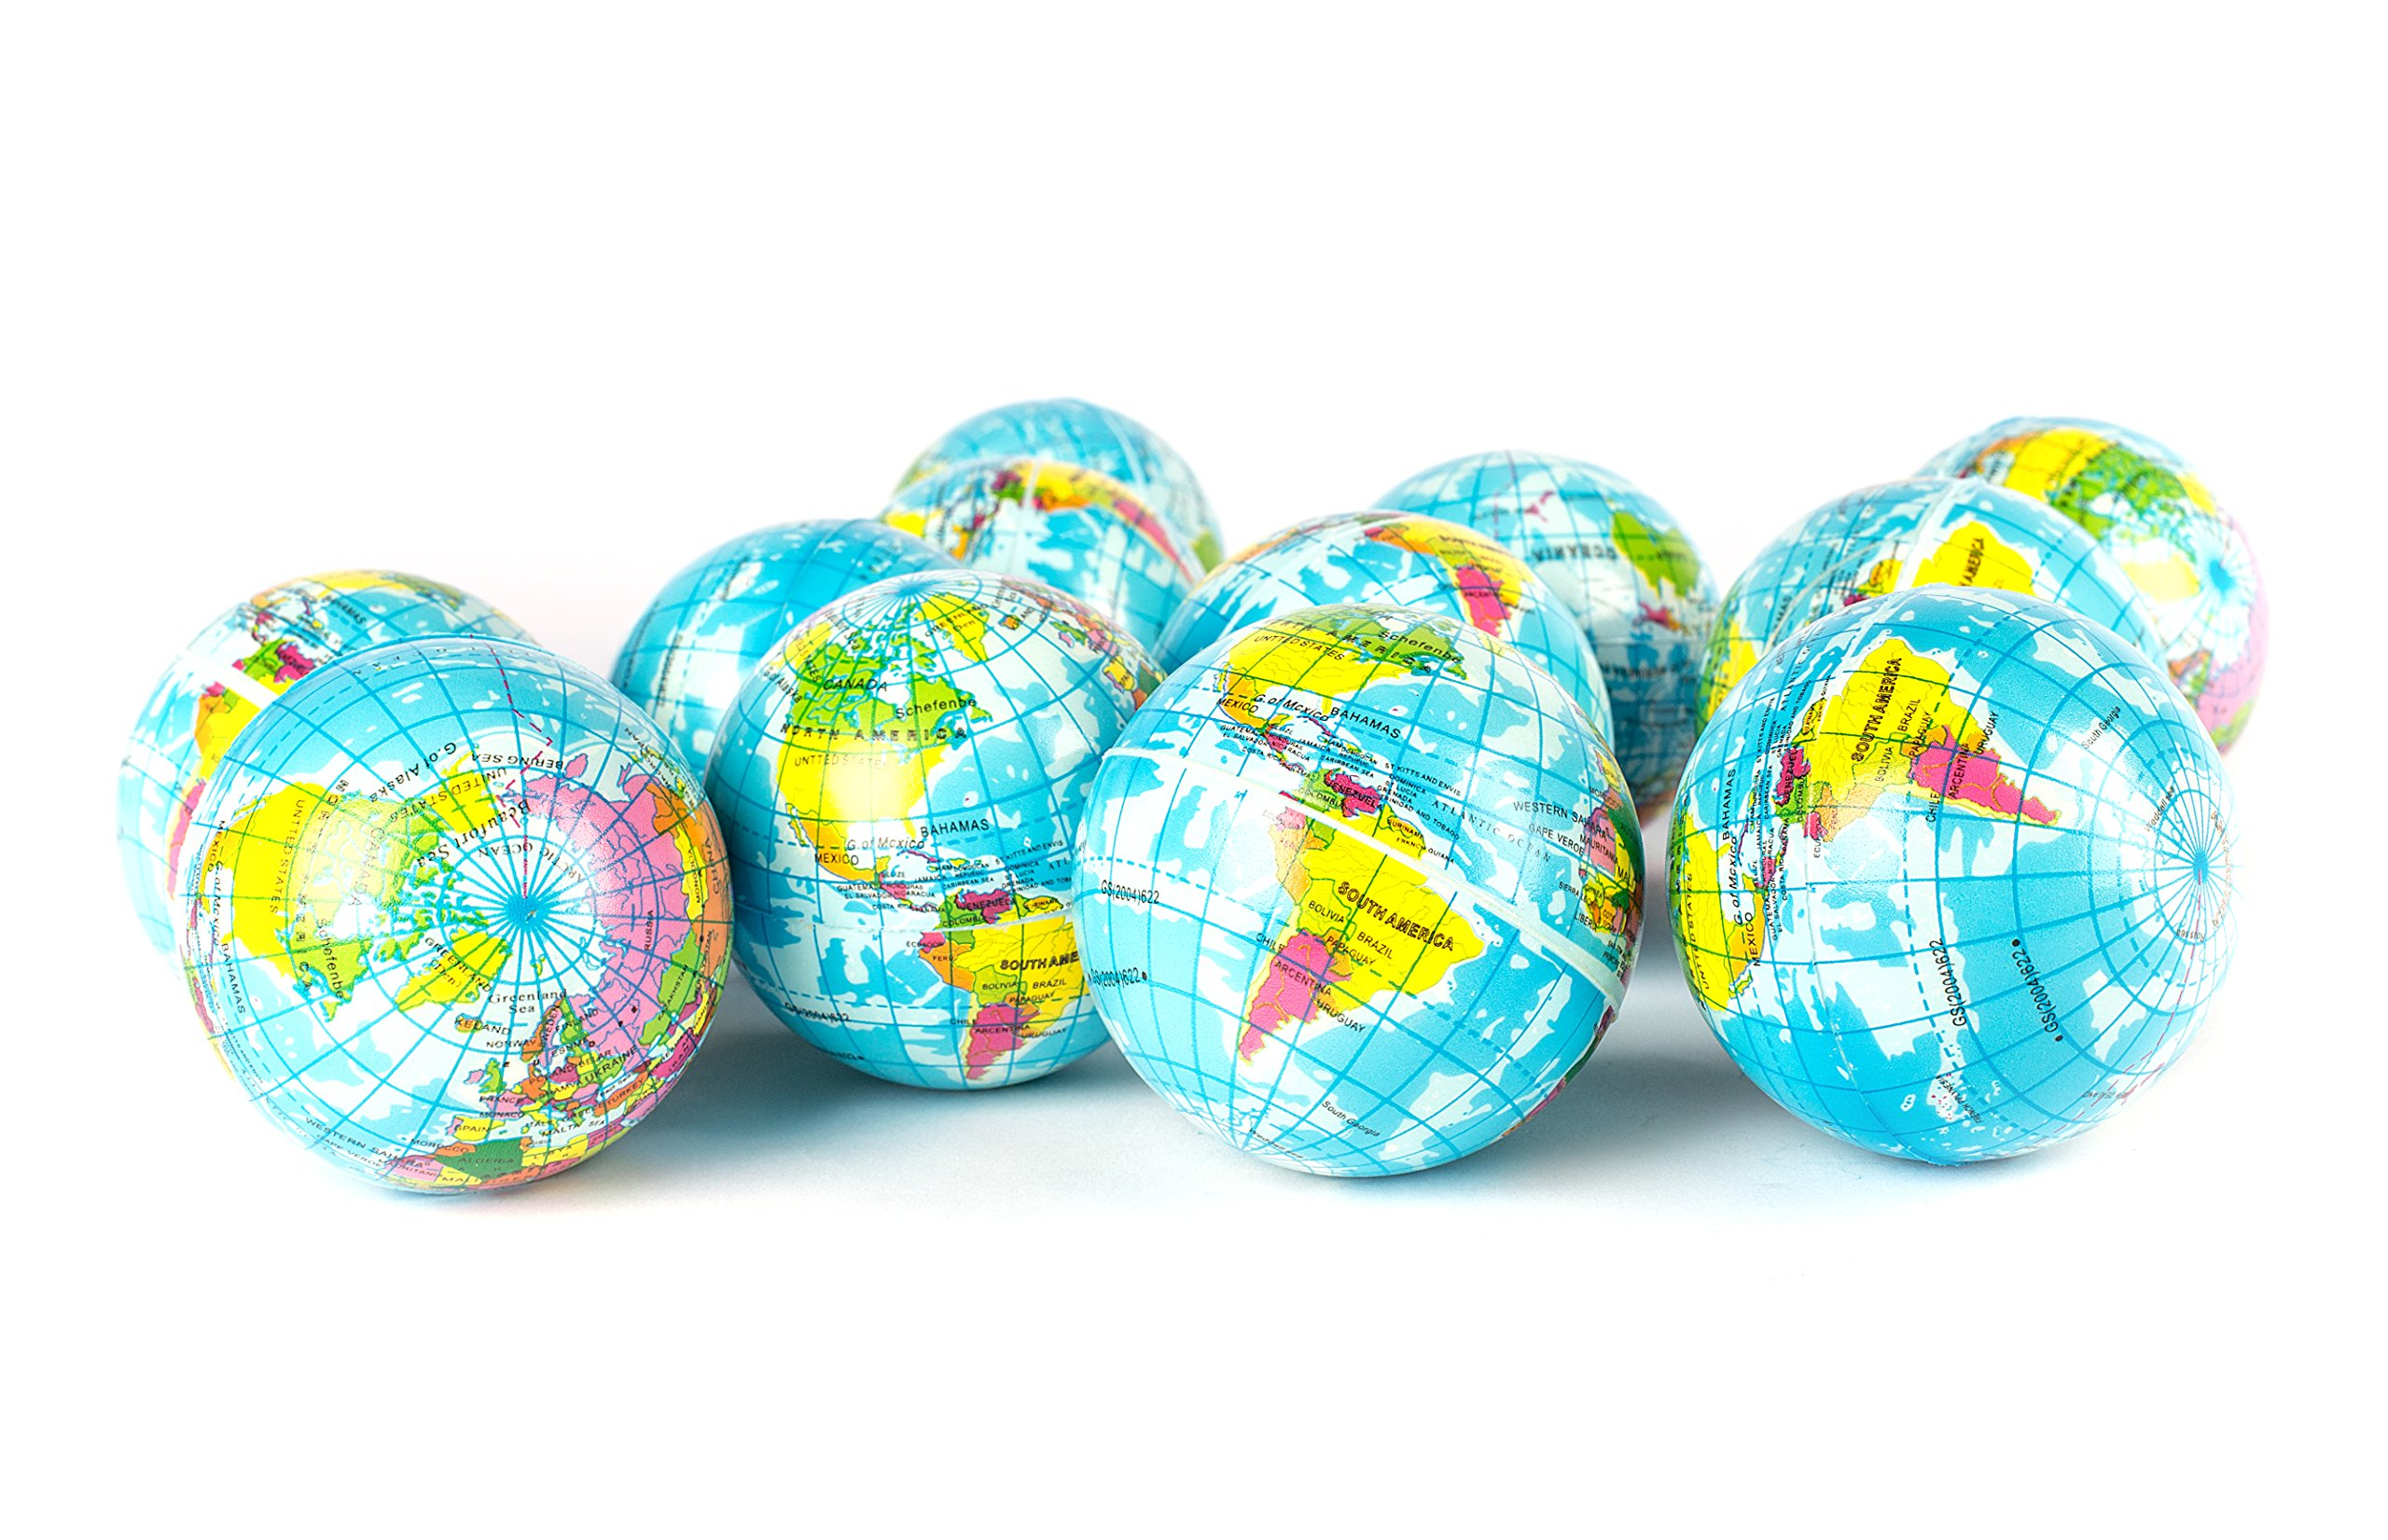 Globe Squeeze Stress Balls Earth Ball Stress Relief Toys Therapeutic Educational Balls Bulk 1 Dozen 3'' Stress Balls